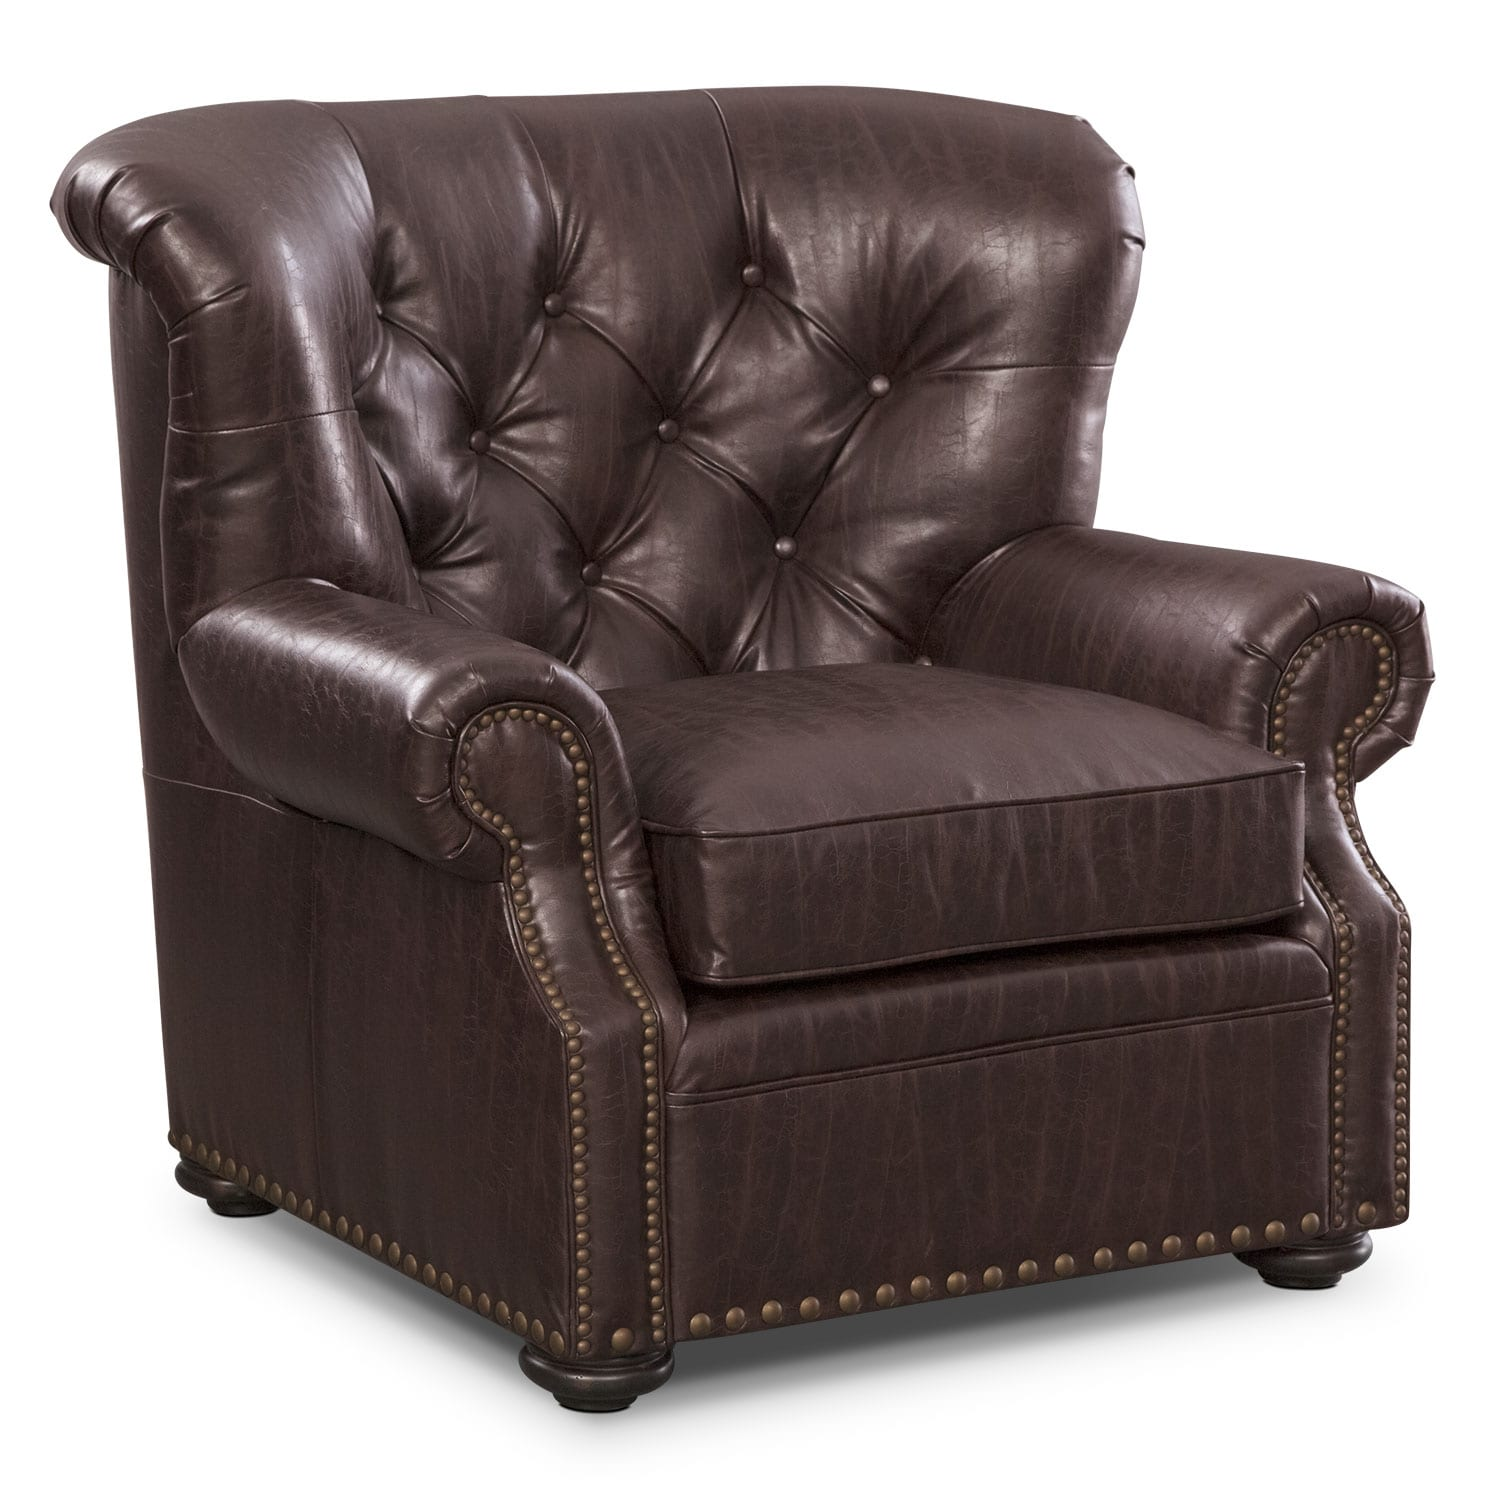 Living Room Furniture - Cabot Chair